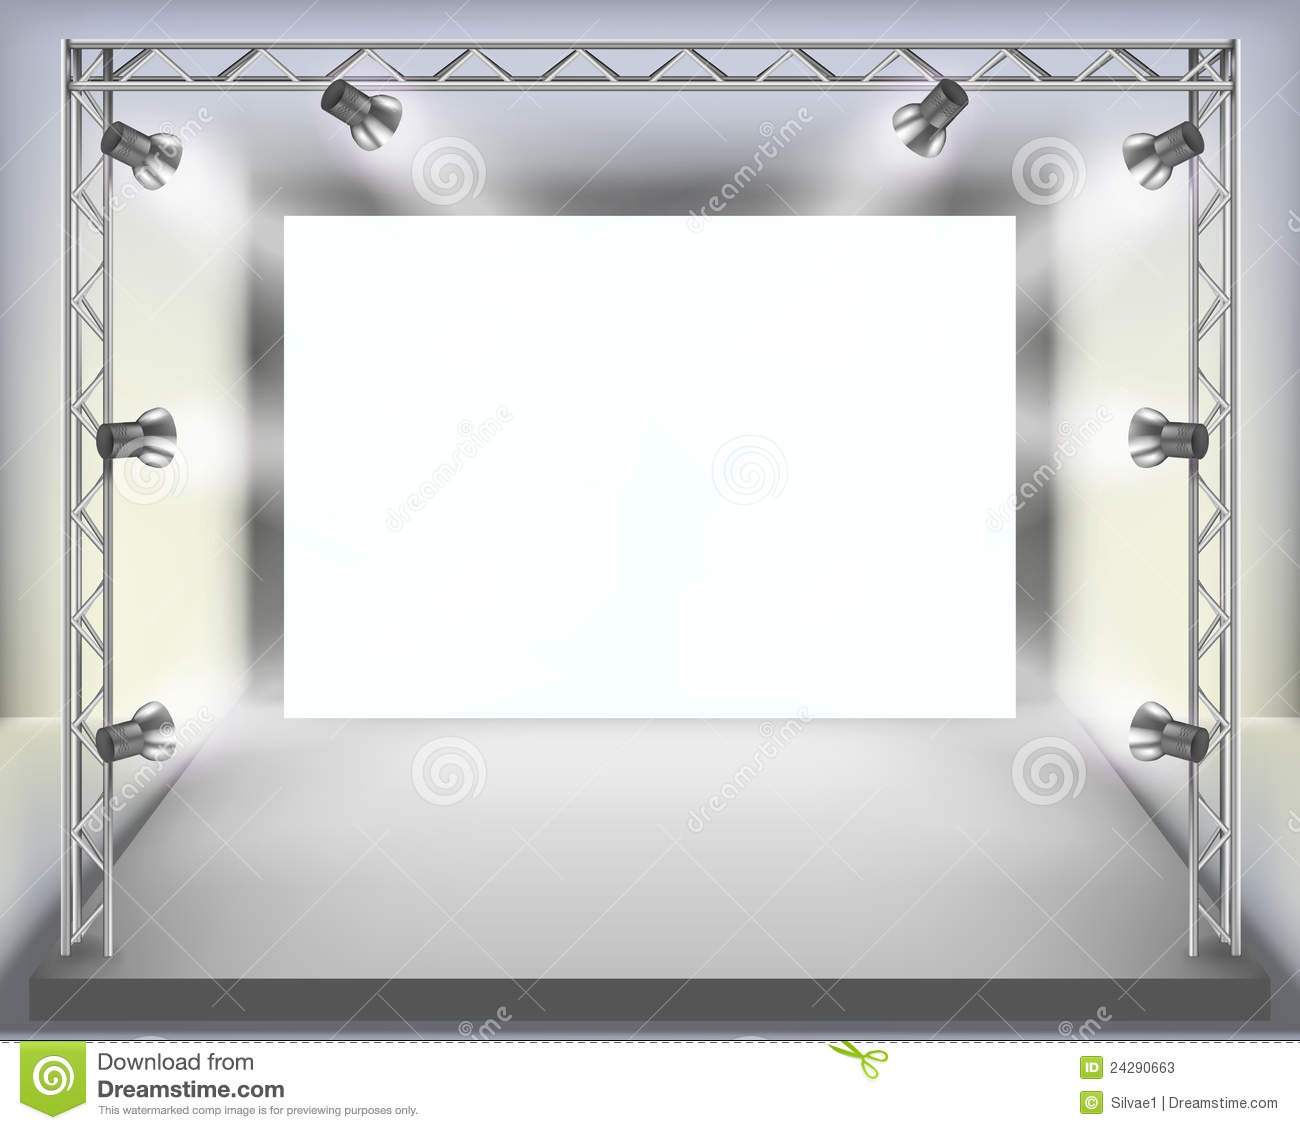 Empty fashion show stage with runway. Vector illustration.